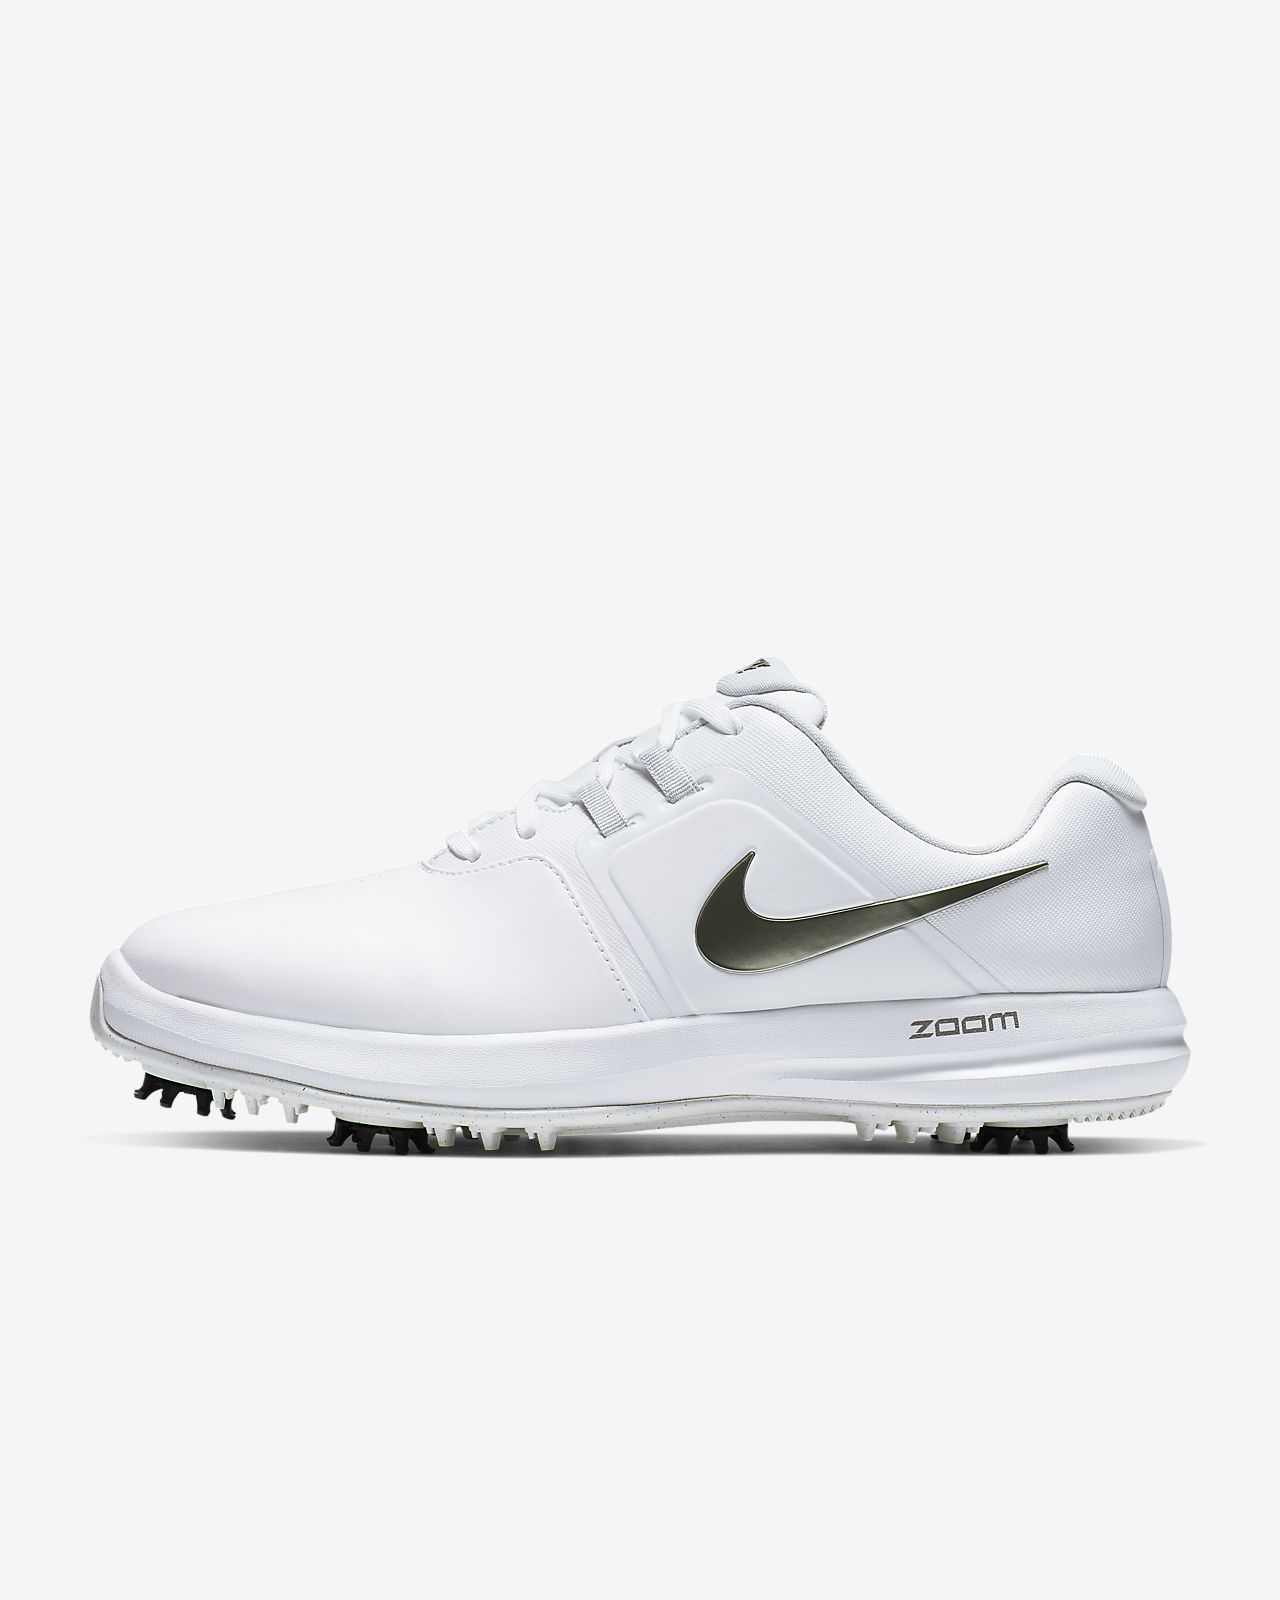 5c27cd2a52464 Nike Air Zoom Victory Pro Men39s Golf Shoe White in 2019